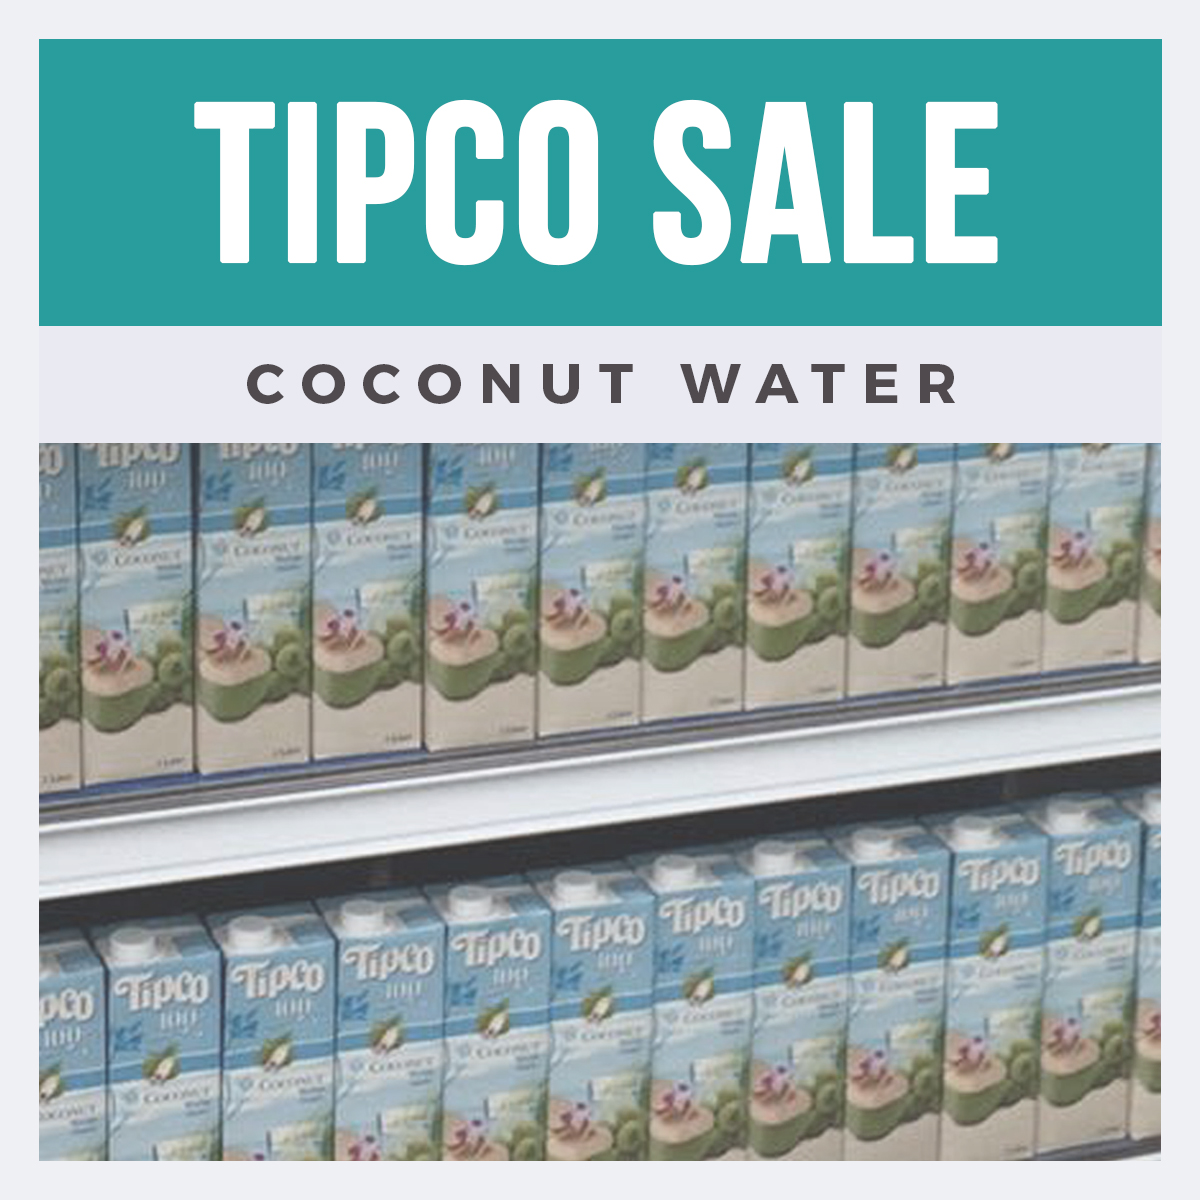 Tipco Coconut Water Sale